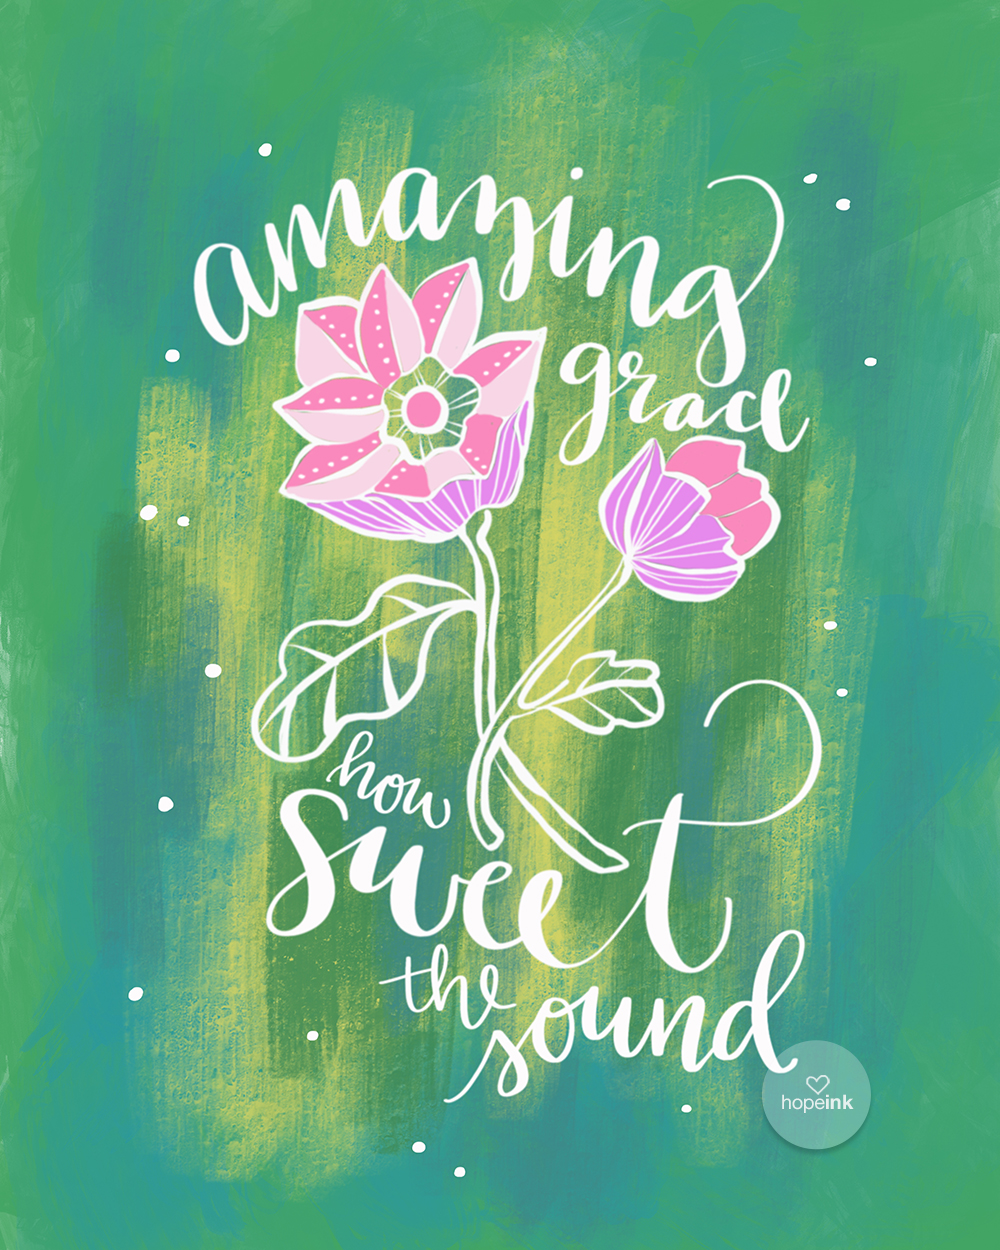 Amazing Grace Hand Lettered Art | Hope Ink.jpg